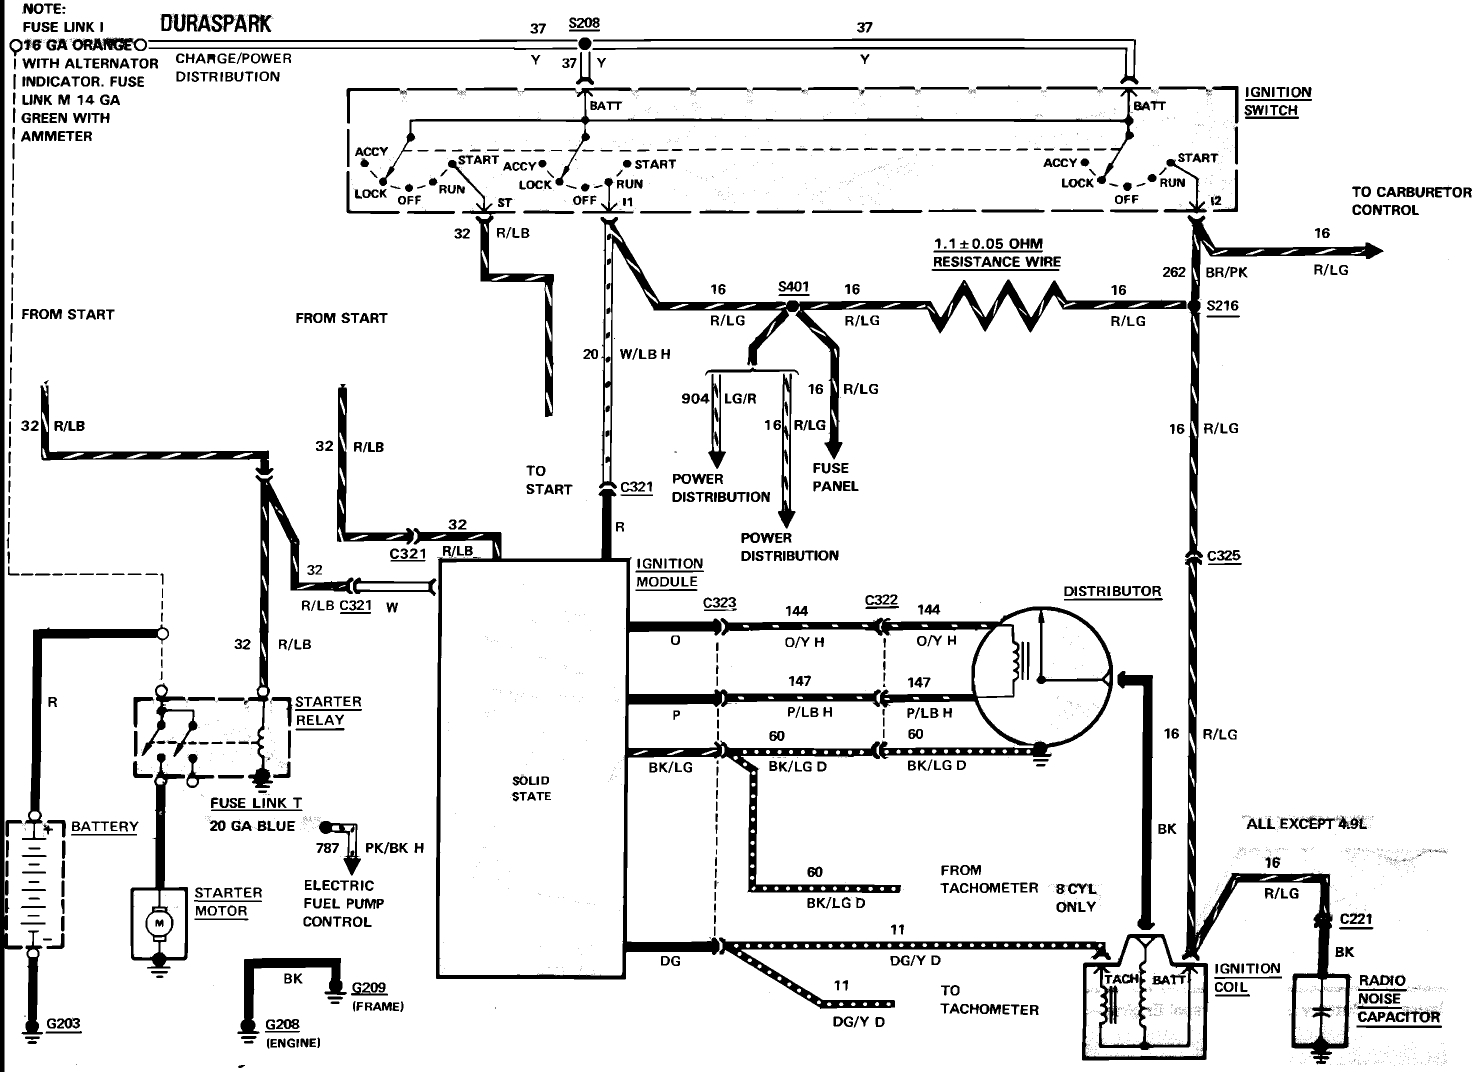 1988 ford f150 wiring diagram 1988 ford distributor wiring diagram 1989 ford f150 ignition wiring diagram | free wiring diagram